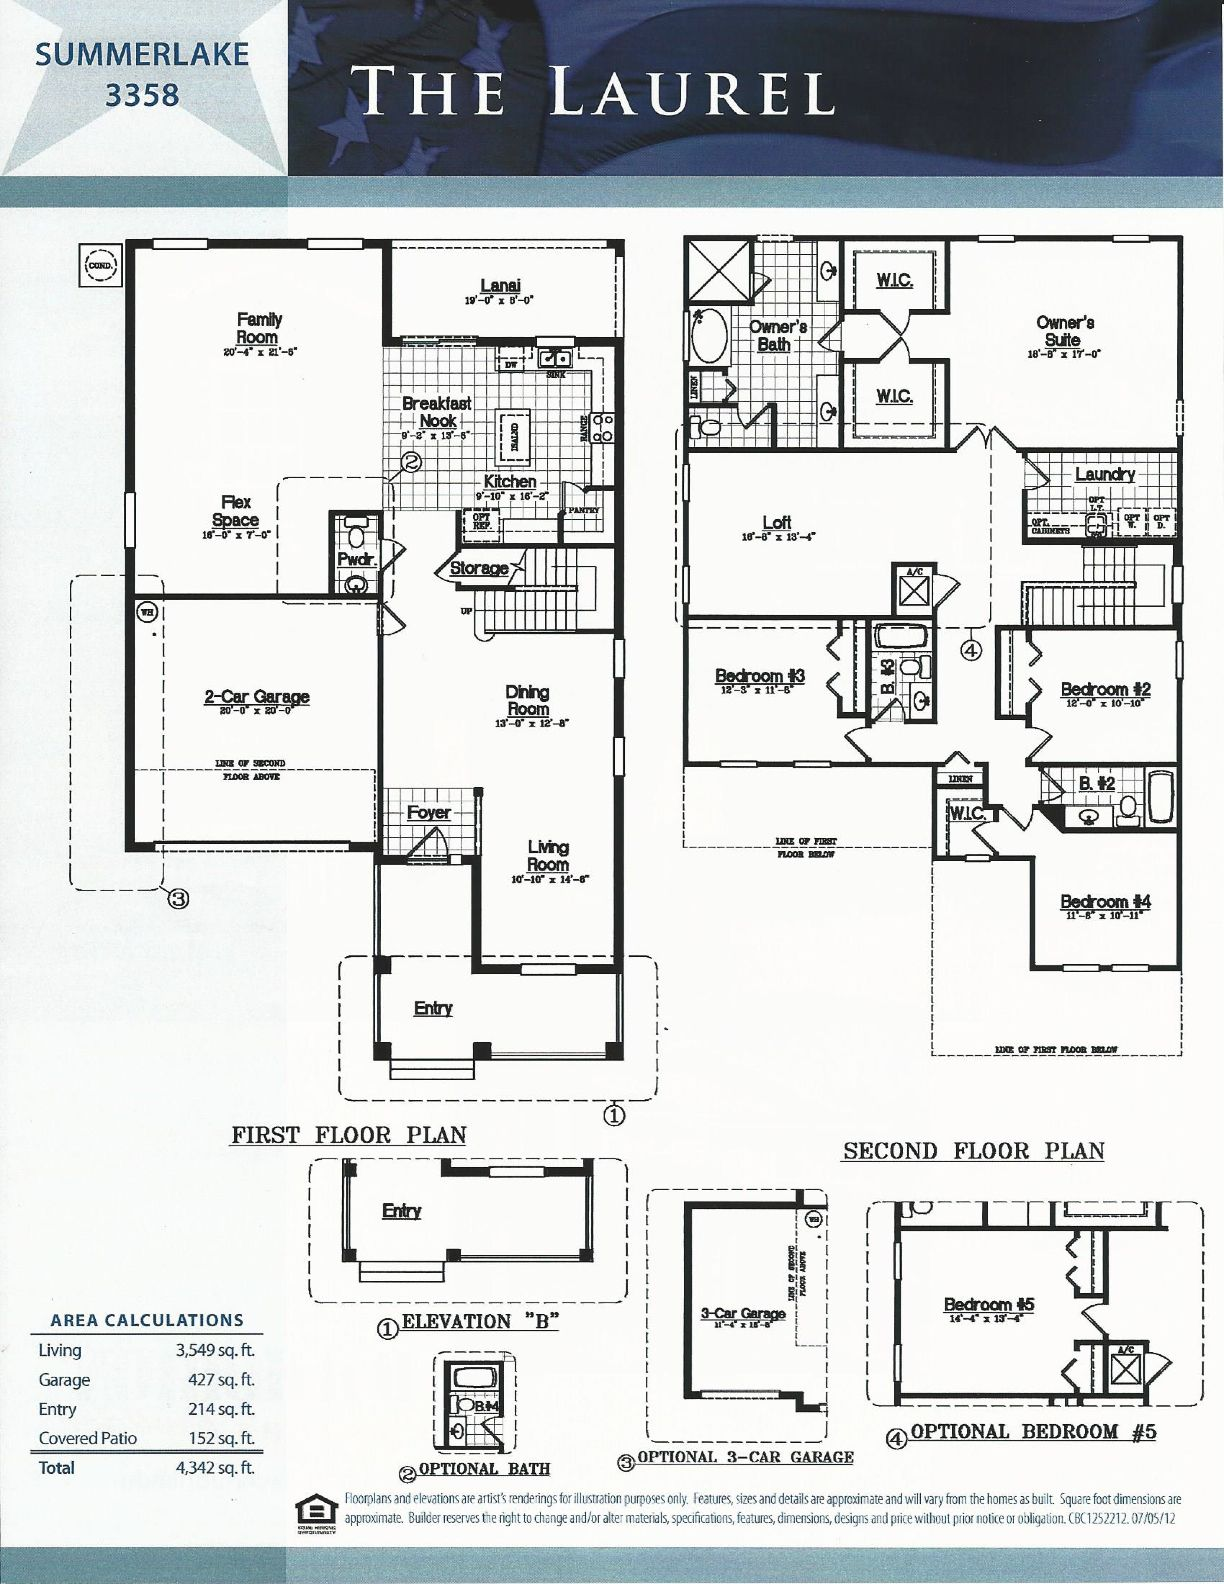 Summerlake Dr Horton Homes Laurel Floor Plan In Winter